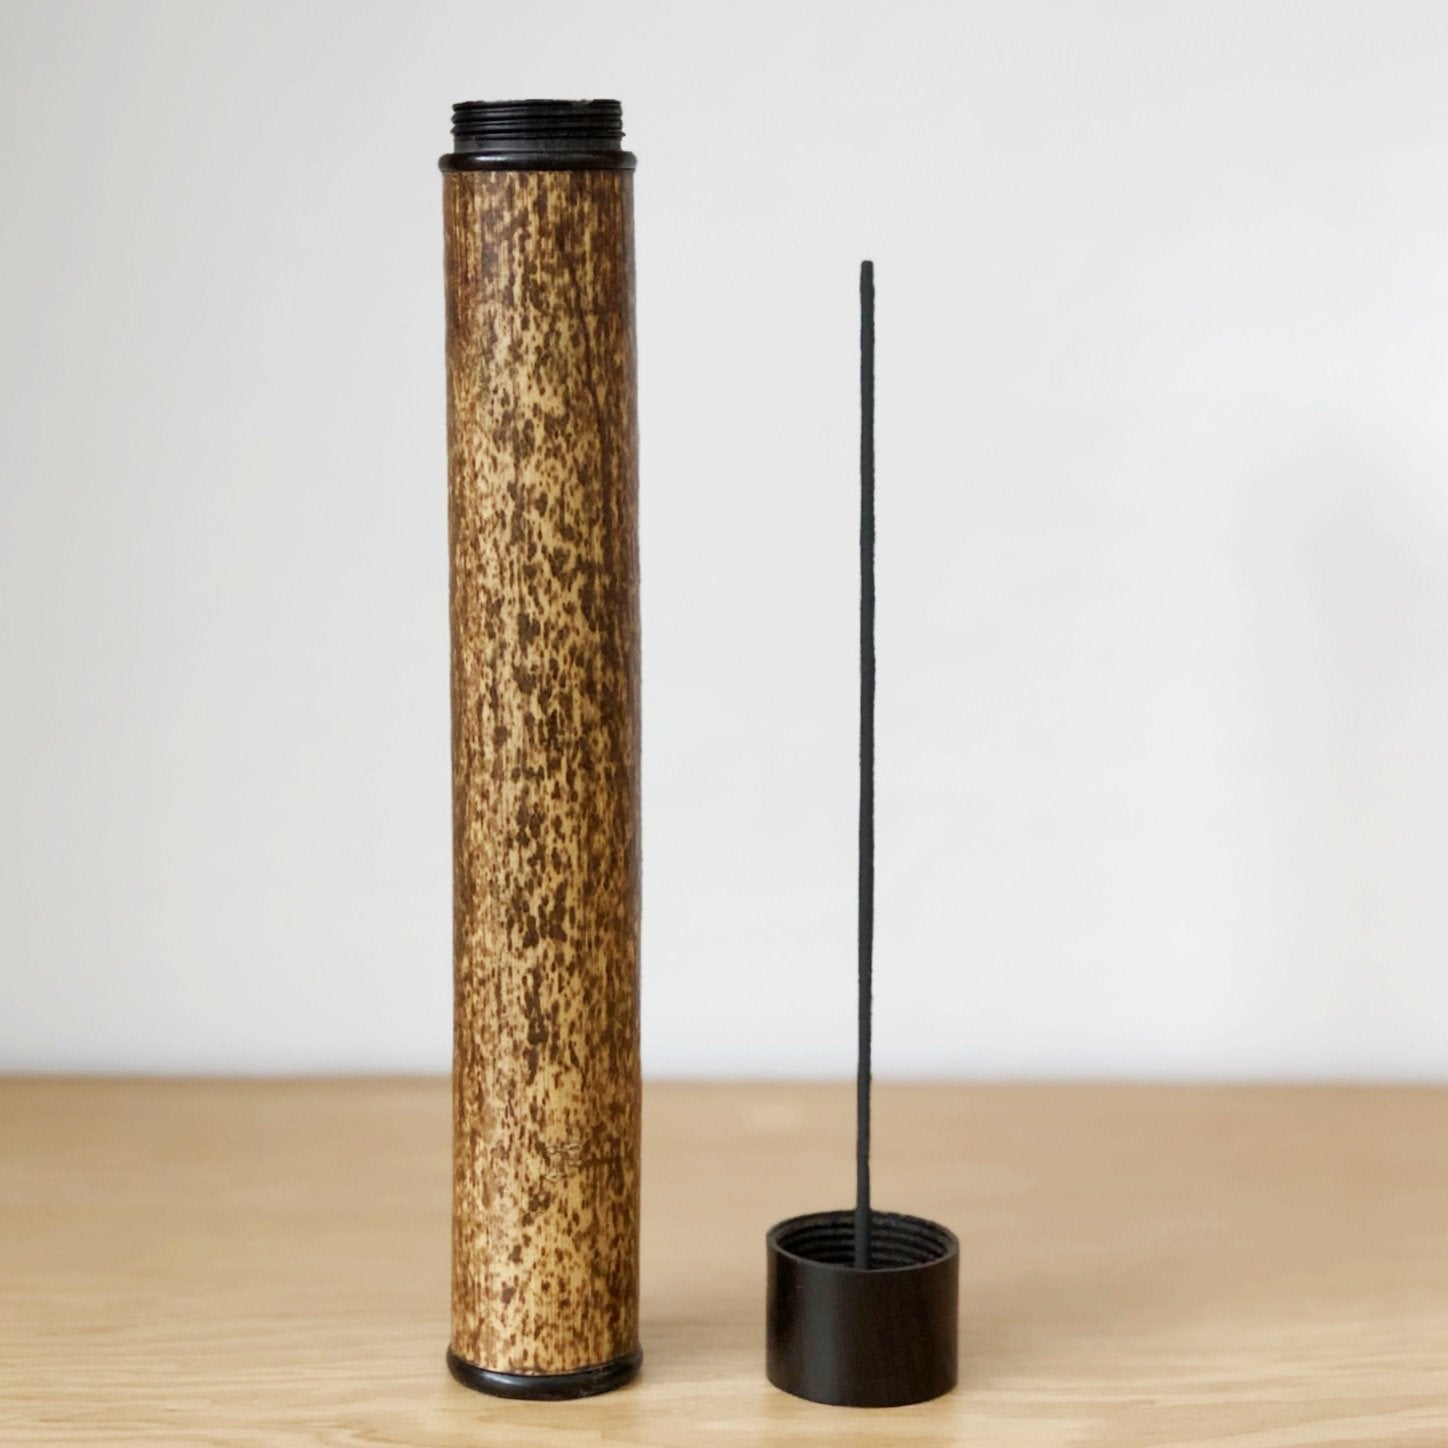 Portable Bamboo Incense Case by Kosuga - tortoise general store